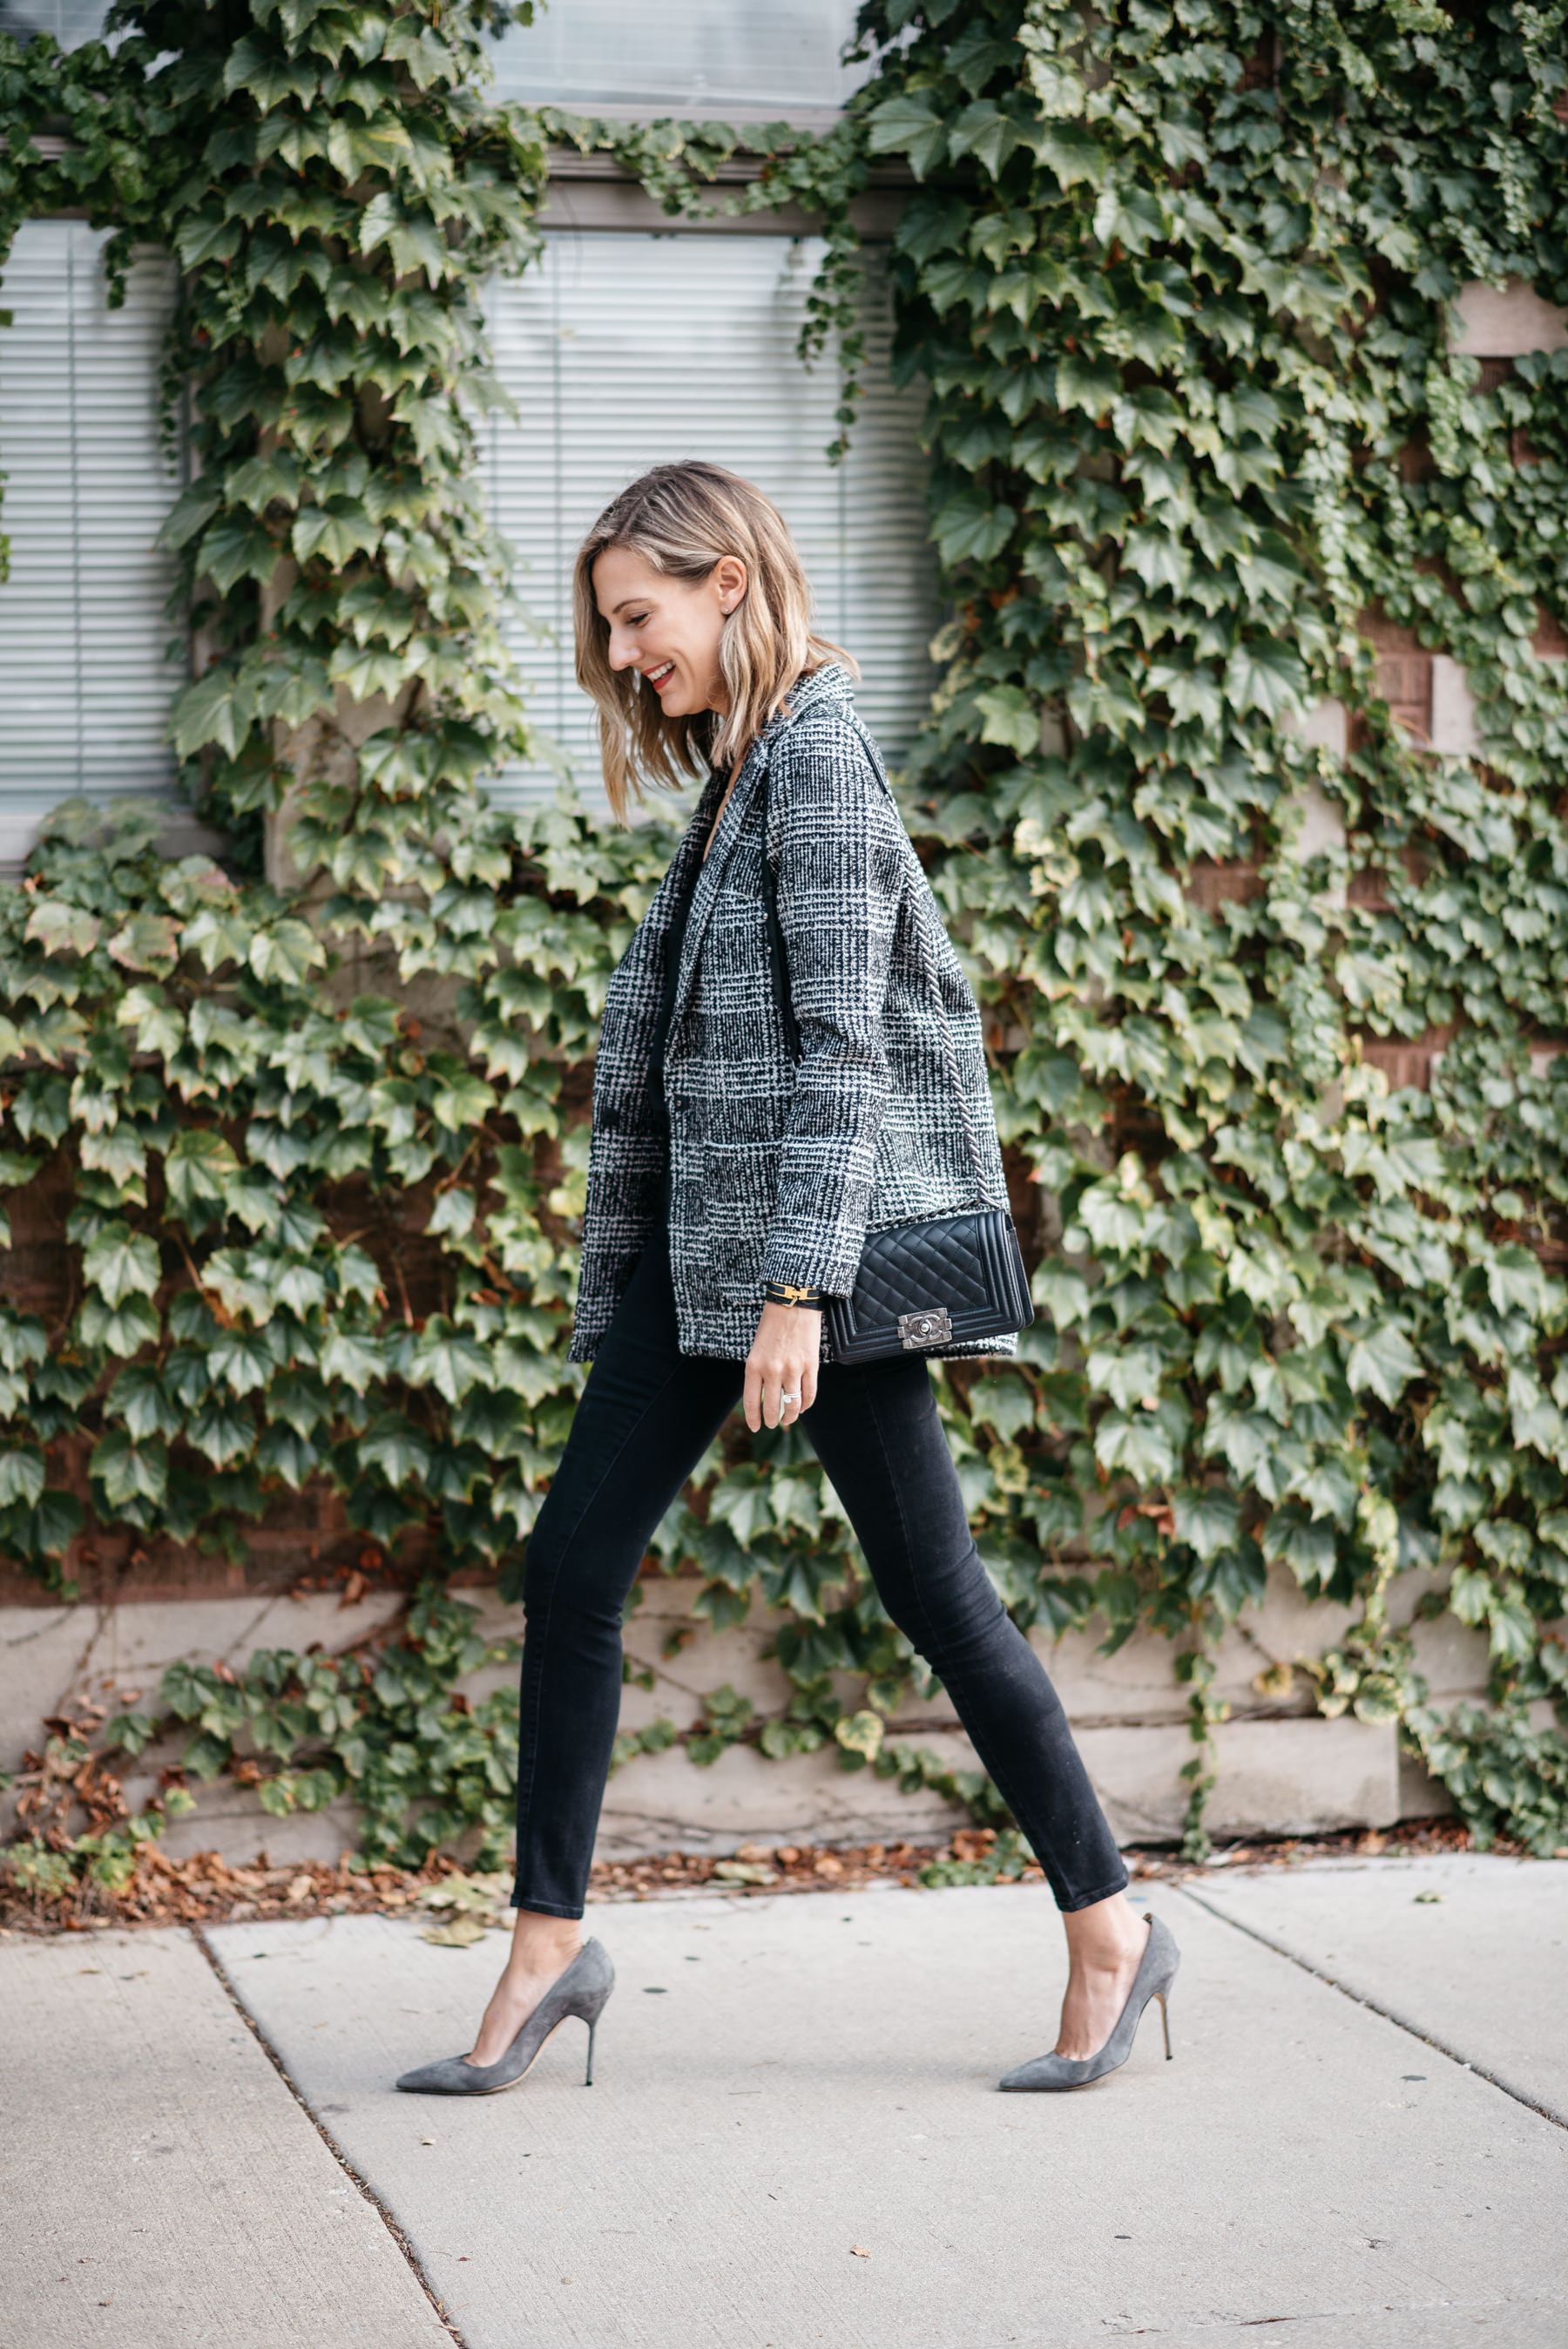 Plaid Blazer Check H Amp M Fall Fashion How To Wear Boyfriend